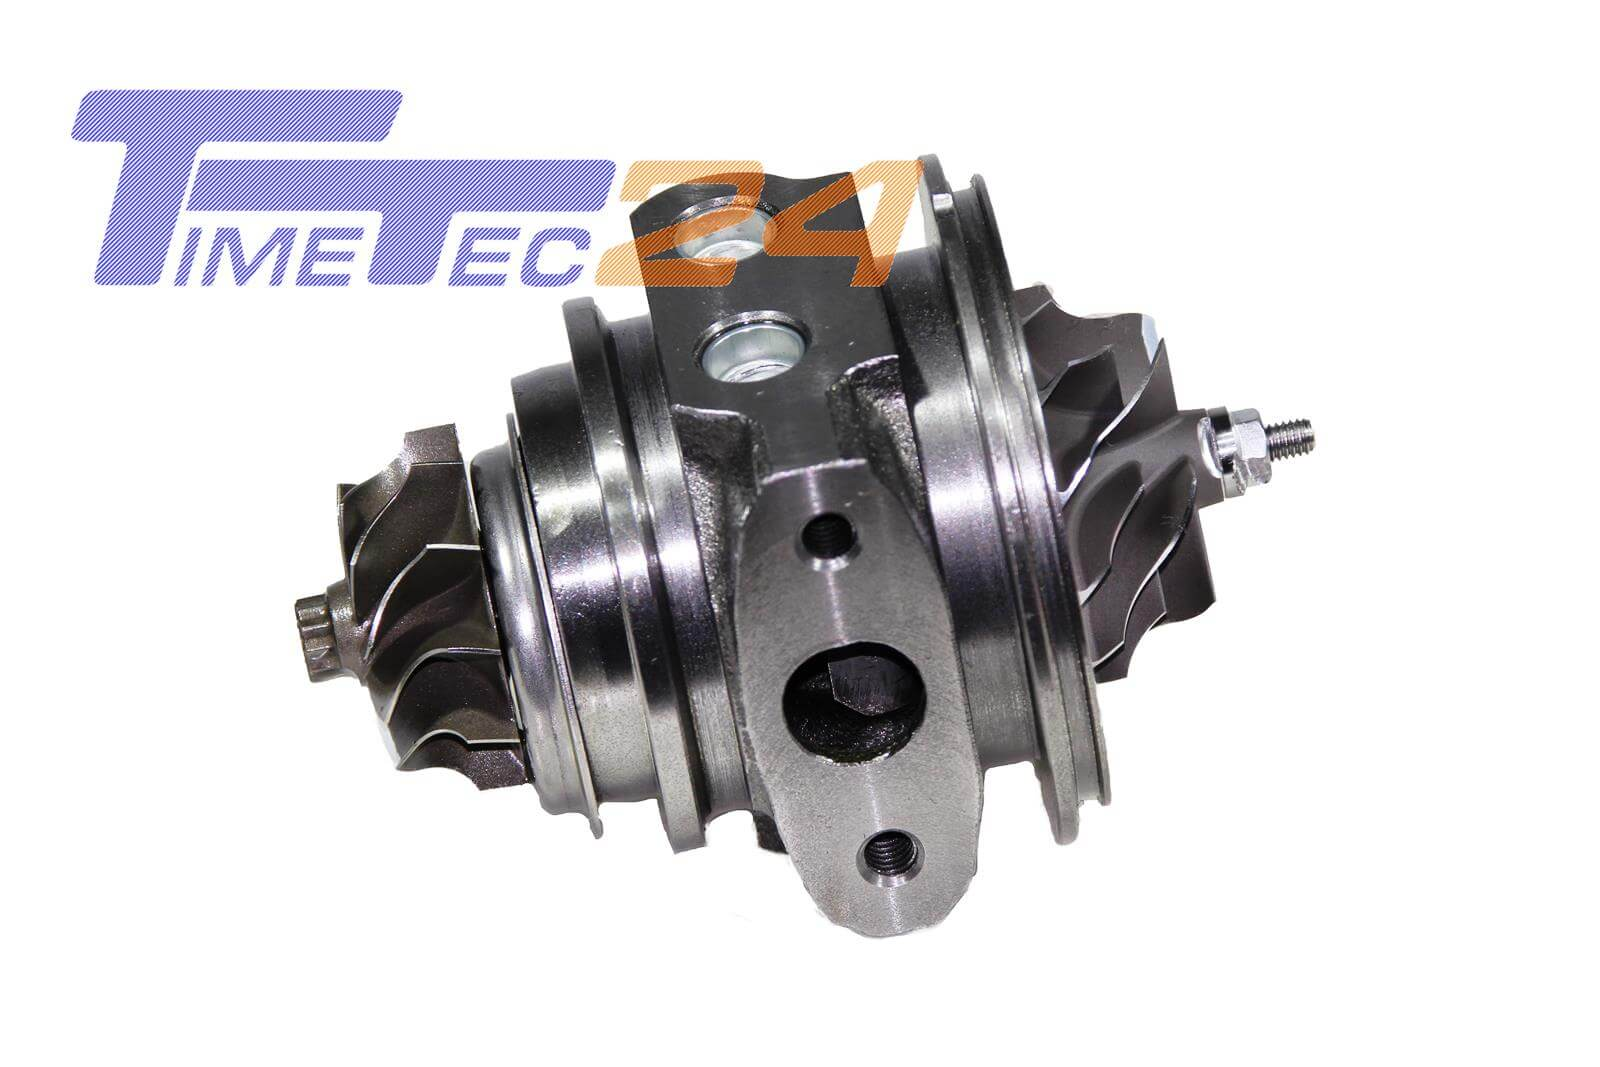 Rumpfgruppe Turbolader Smart Fortwo 1,0 Turbo 49173-02010 OE A1320900180